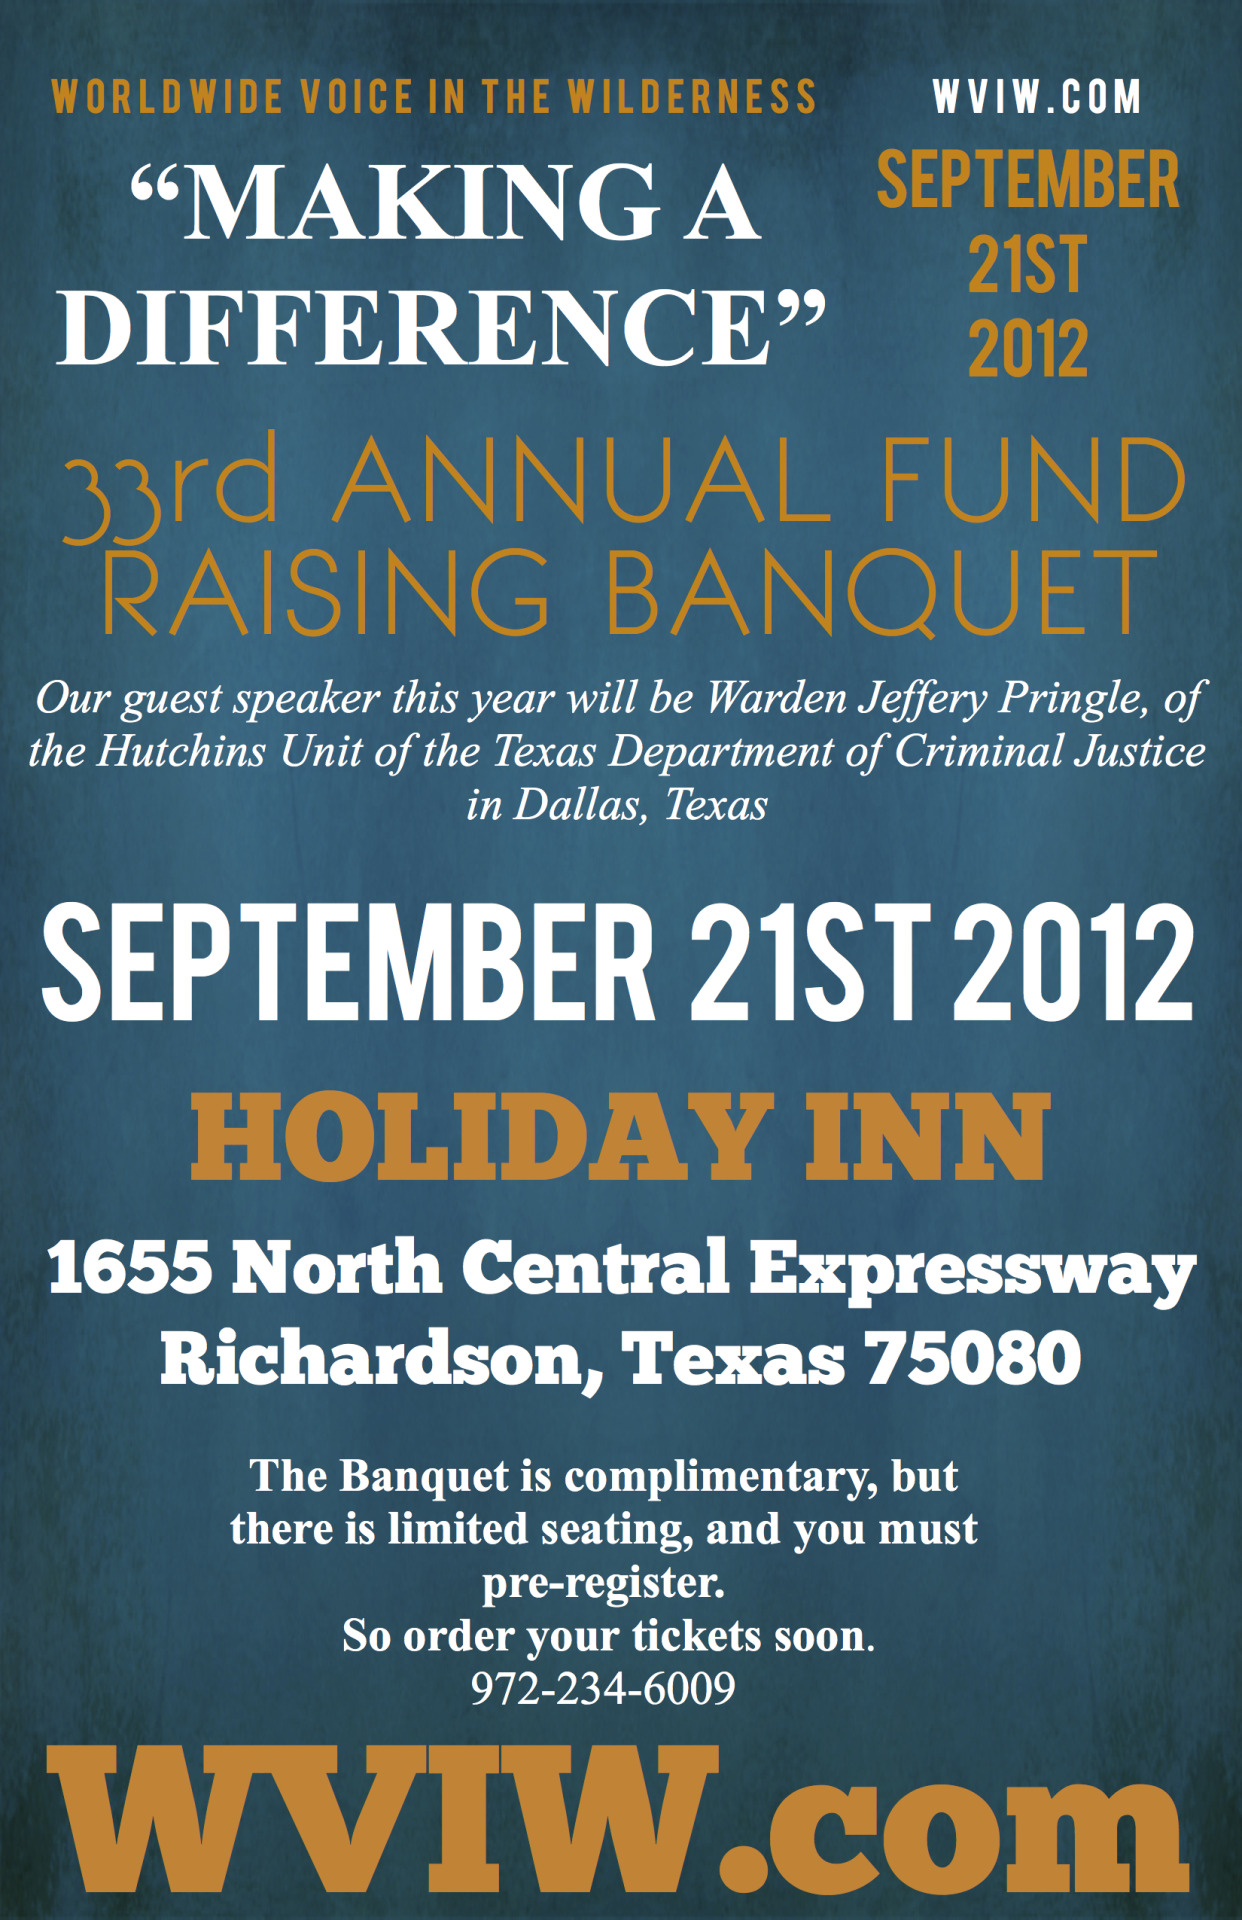 """WVIW Annual Banquet 2012     """"WVIW-MAKING A DIFFERENCE""""         33 rd ANNUAL FUND RAISING BANQUET          FRIDAY, SEPTEMBER 21, 2012         HOLIDAY INN, RICHARDSON         1655 North Central Expressway         Richardson, Texas 75080               Warden Jeffery Pringle, of the Hutchins Unit of the Texas Department of Criminal Justice in Dallas, Texas, will be our guest speaker.Warden Pringle has stated,  """"I am not a prison warden who happens to be a Christian; I am a Christian who happens to be a prison warden.""""  You do not want to miss this powerful story about how Jesus  """"IS MAKING A DIFFERENCE""""  in his life, both inside and outside of prison.              September 21, will be here before we know it.I hope and pray you are making plans to be with us.Information can be found on our web site,    www.wviw.com    .                Again this year the Celebration Banquet is complimentary.But, there is limited seating, and you must pre-register.So order your tickets soon    .              Please consider sponsoring one or more tables at $500.00 each.Or, perhaps you could sponsor one or more couples for $100.00 each.God may impress on you to be a """"CONQUERORS"""" sponsor for a gift of $1,000. Whatever the size of your gift, please help us with a sponsorship today.                 We look forward to seeing you at """"The WVIW-MAKING A DIFFERENCE"""" Fundraising Banquet .""""Please confirm your attendance by filling out the ONLINE response form by September 17, 2012.You may also register by email at   johnnymoffitt@wviw.com   .              Again, there is no cost to attend; however, we will be asking you to prayerfully consider becoming a partner with us in taking the Gospel to prisoners and the forgotten and neglected peoples around the world.For more information go to our web site, www.wviw.com , or call 972-234-6009 .              Your Servant,              Johnny Moffitt, D.Min.       Director"""